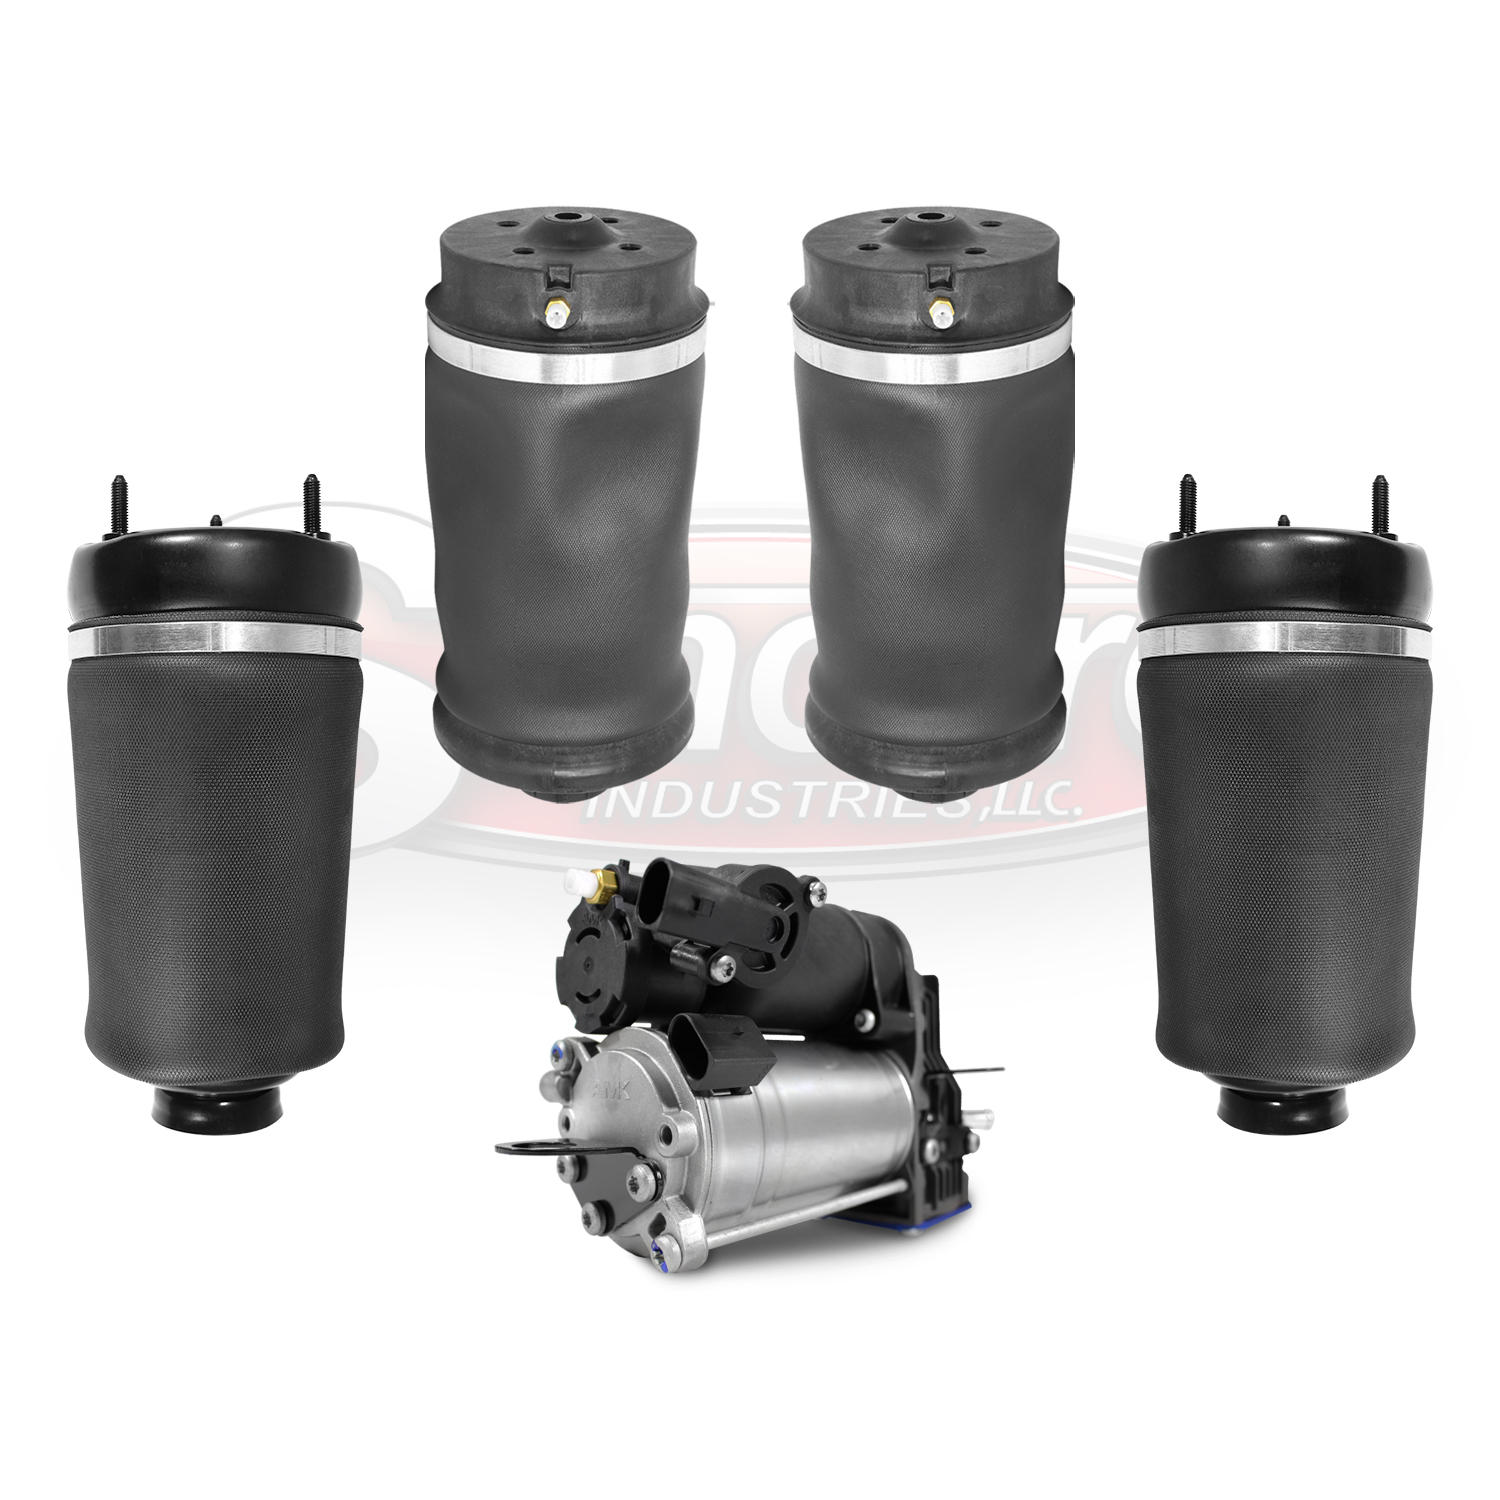 Front & Rear Airmatic Air Springs & Compressor Kit - Mercedes-Benz GL & ML Class X164 W164